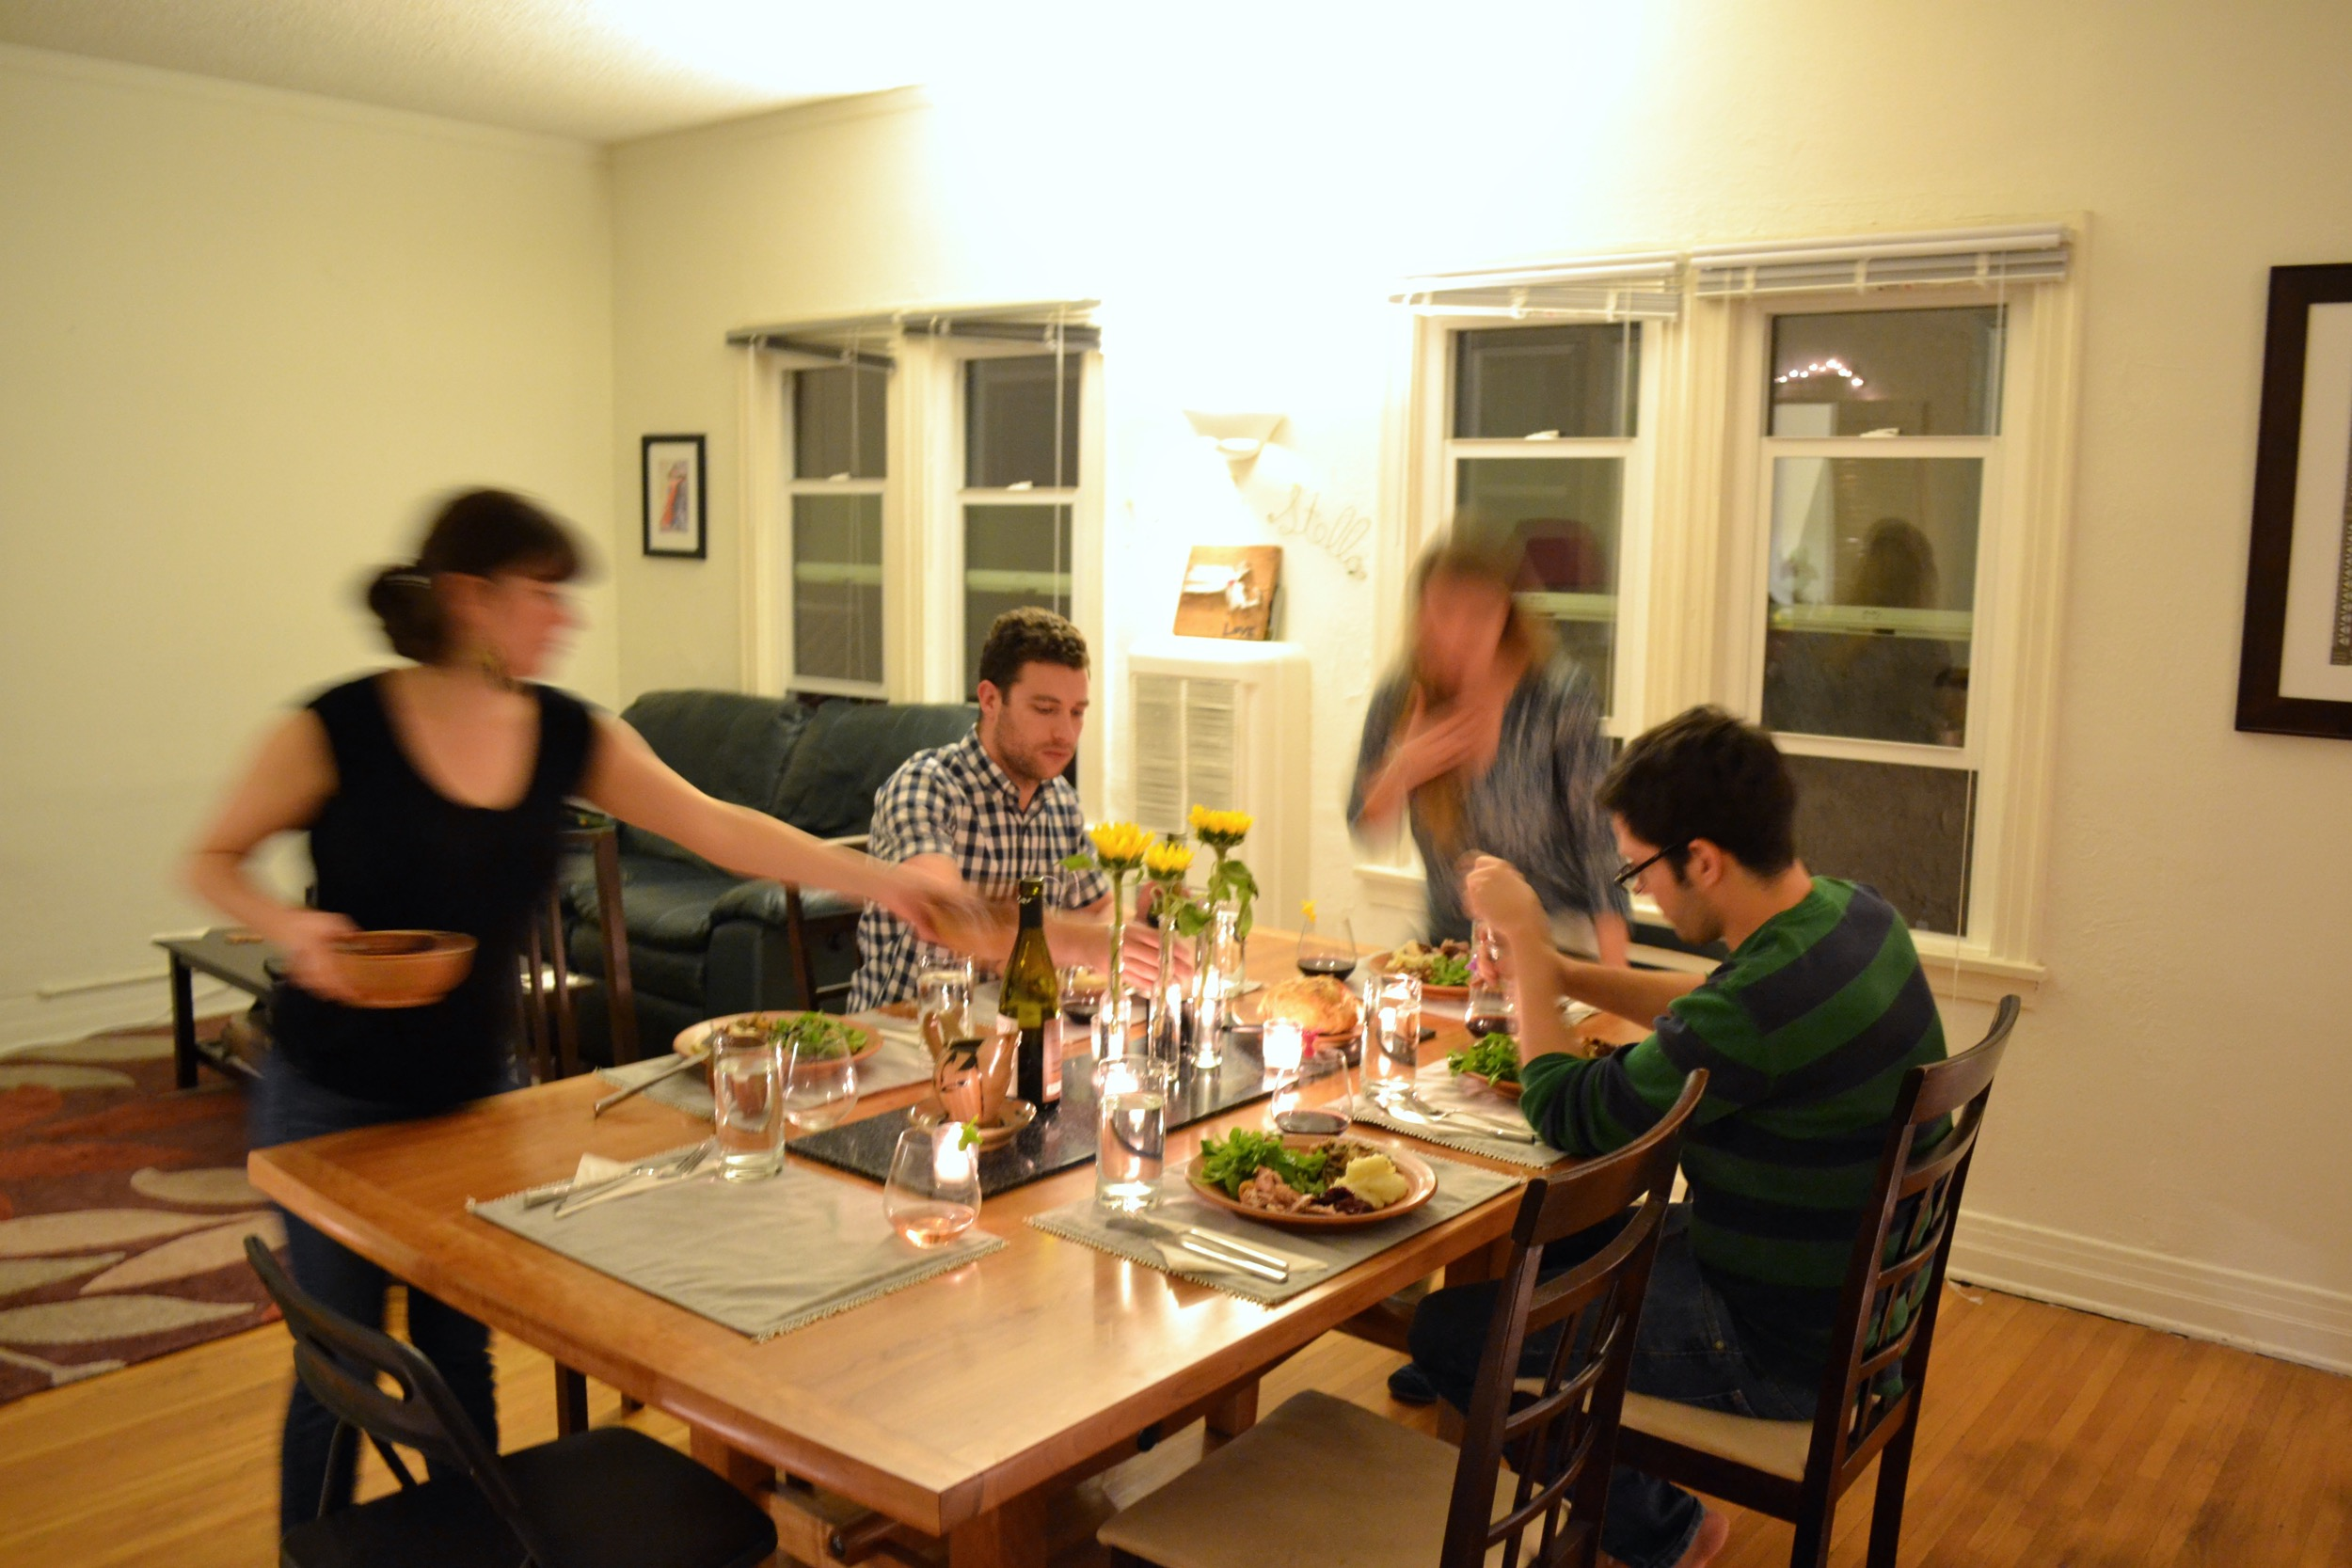 I love this shot - How everyone is swirling around the two already seated at the table.